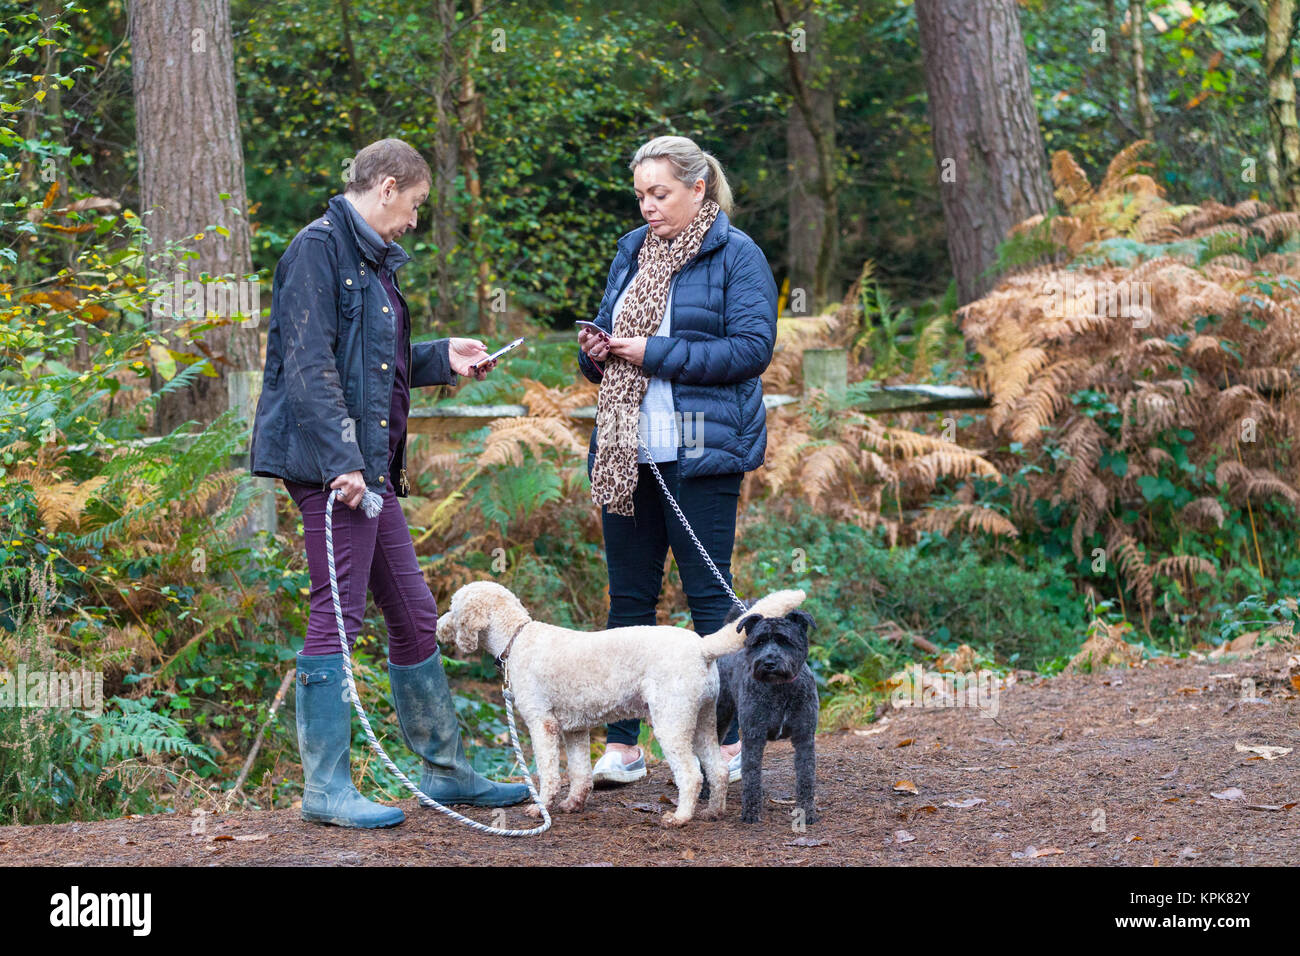 Two women holding mobile phones with dogs attached to leashes at the Bedgebury National Pinetum at Bedgebury, Kent - Stock Image